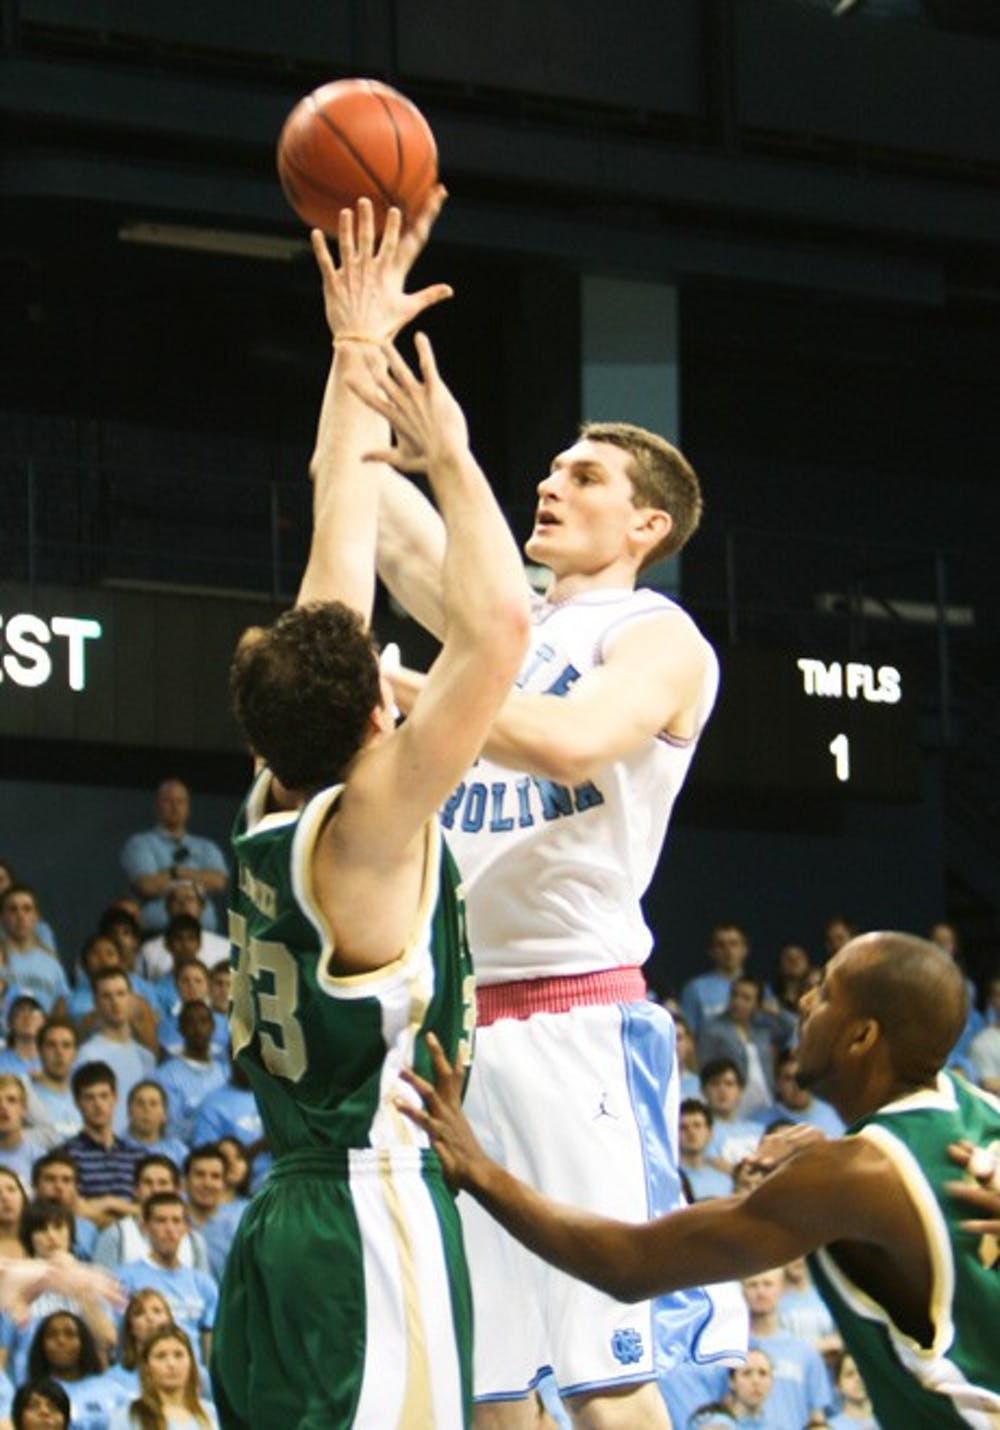 Henson and Zeller gain experience